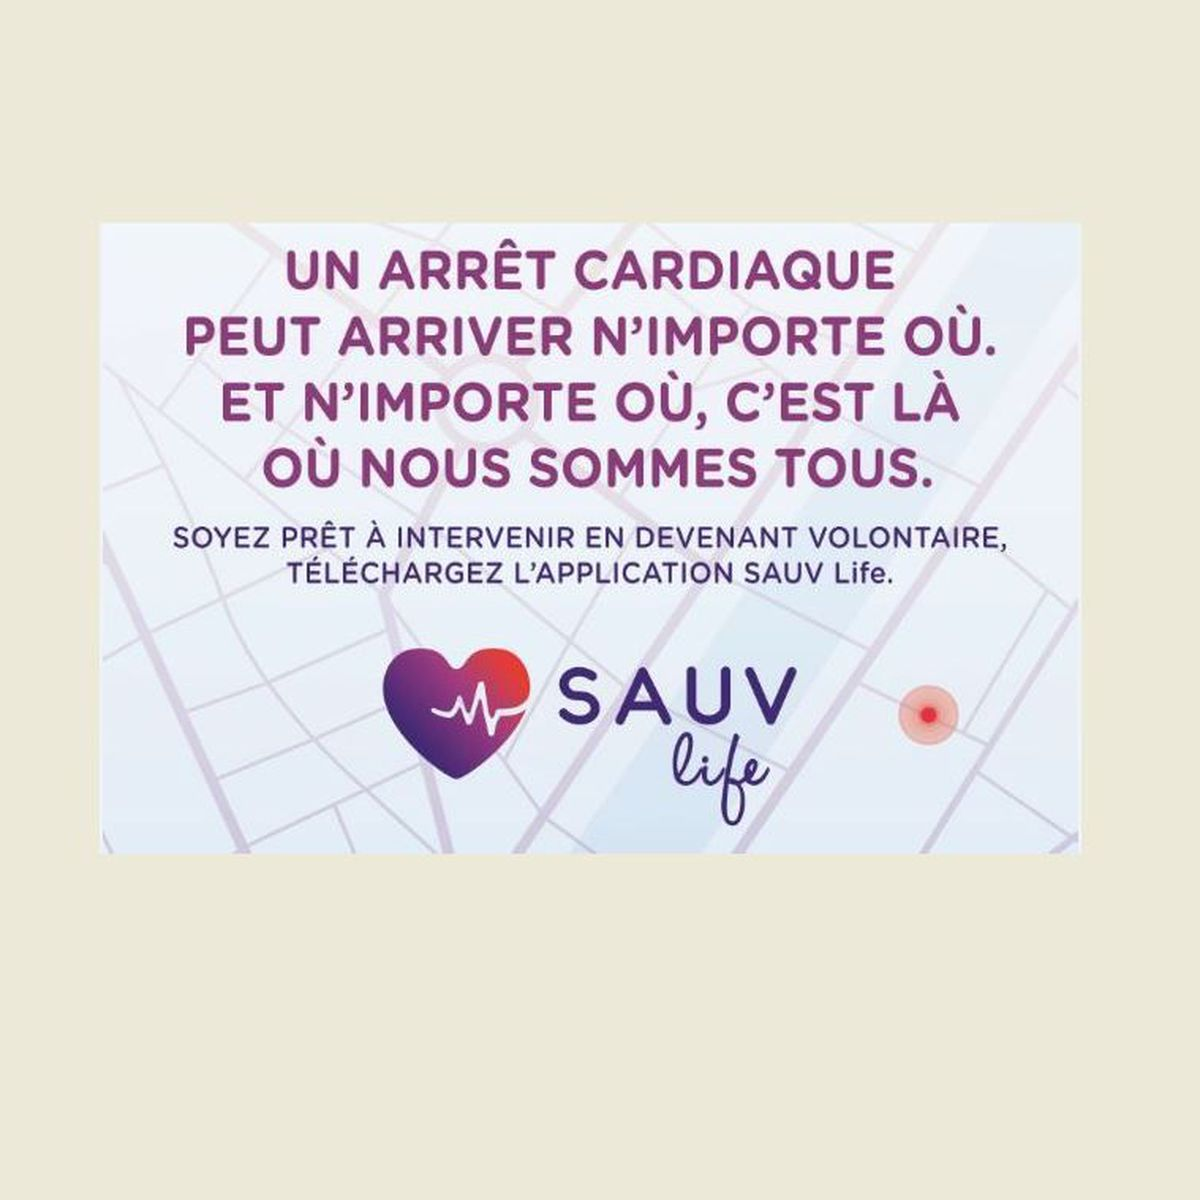 Application Sauv Life : Soyons tous des sauveteurs citoyens